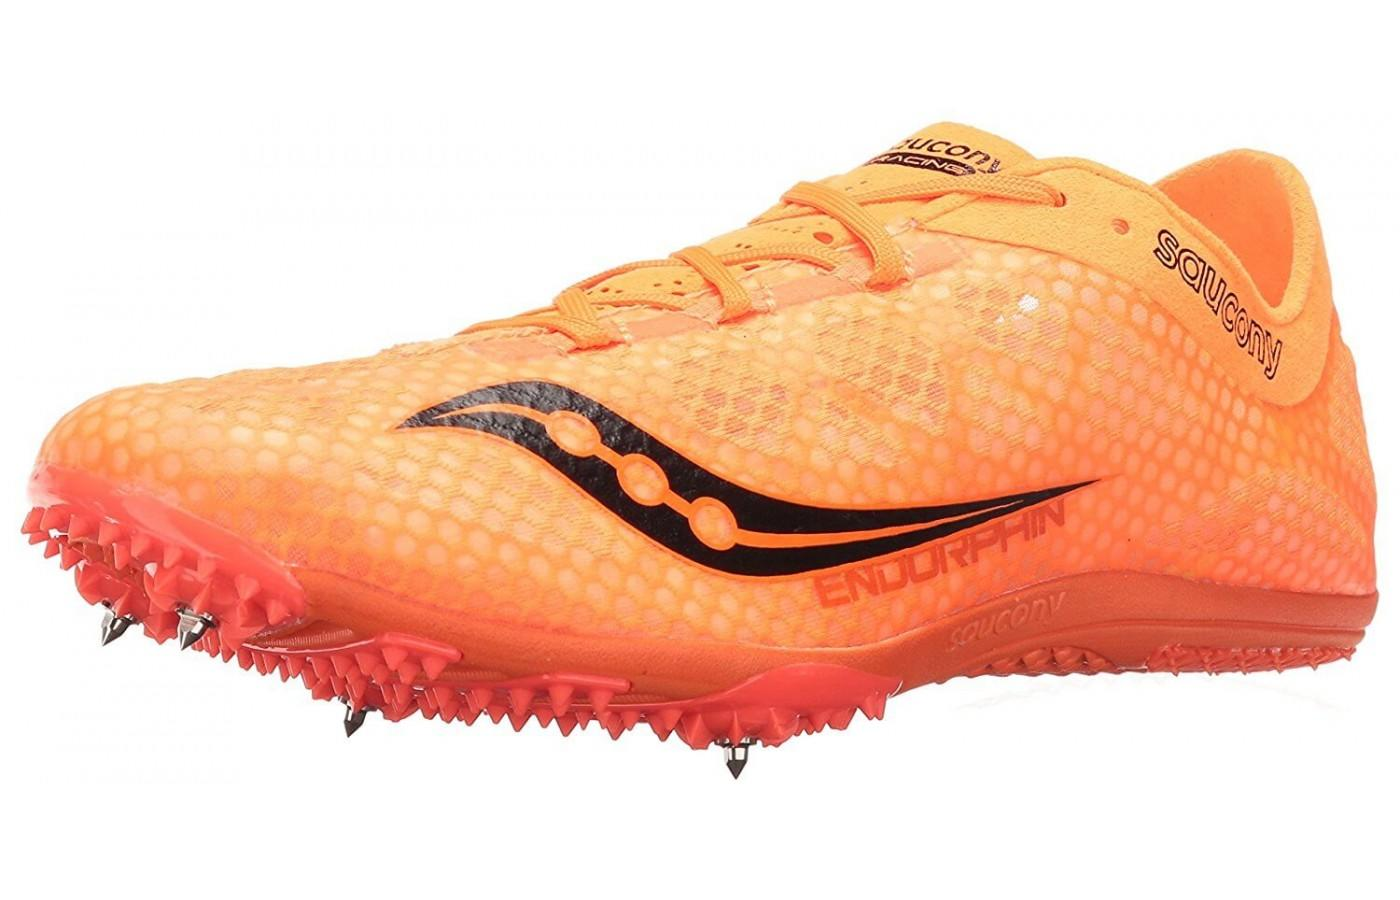 the Saucony Endorphin shown from the front/side